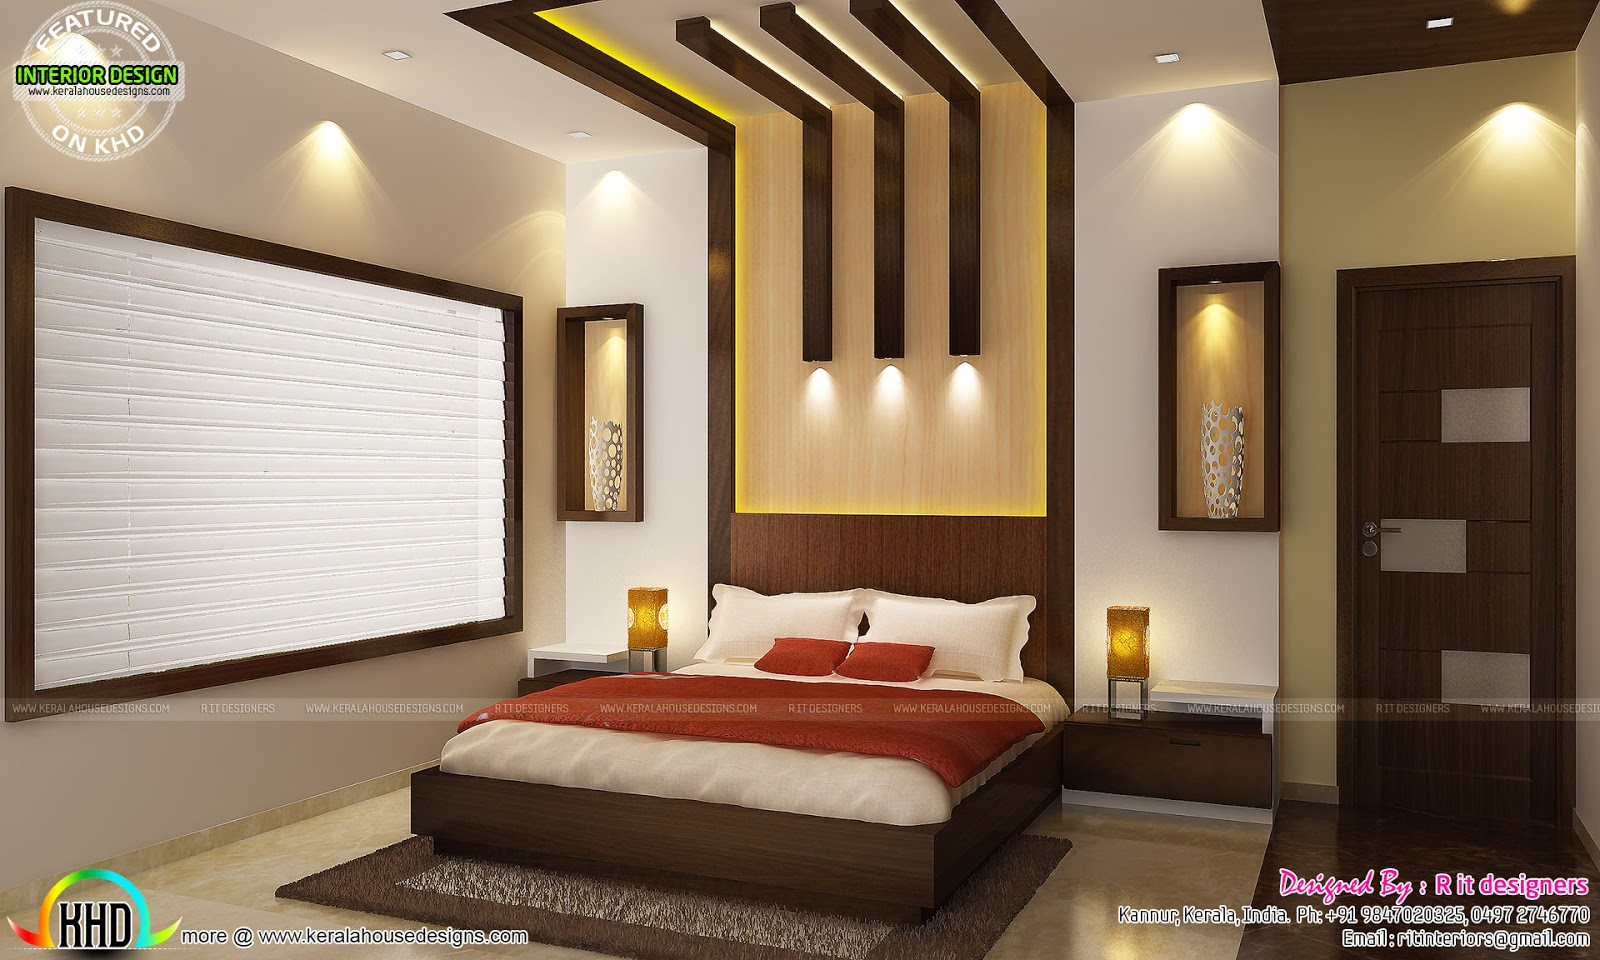 Kitchen living bedroom dining interior decor kerala for Interior designs houses pictures